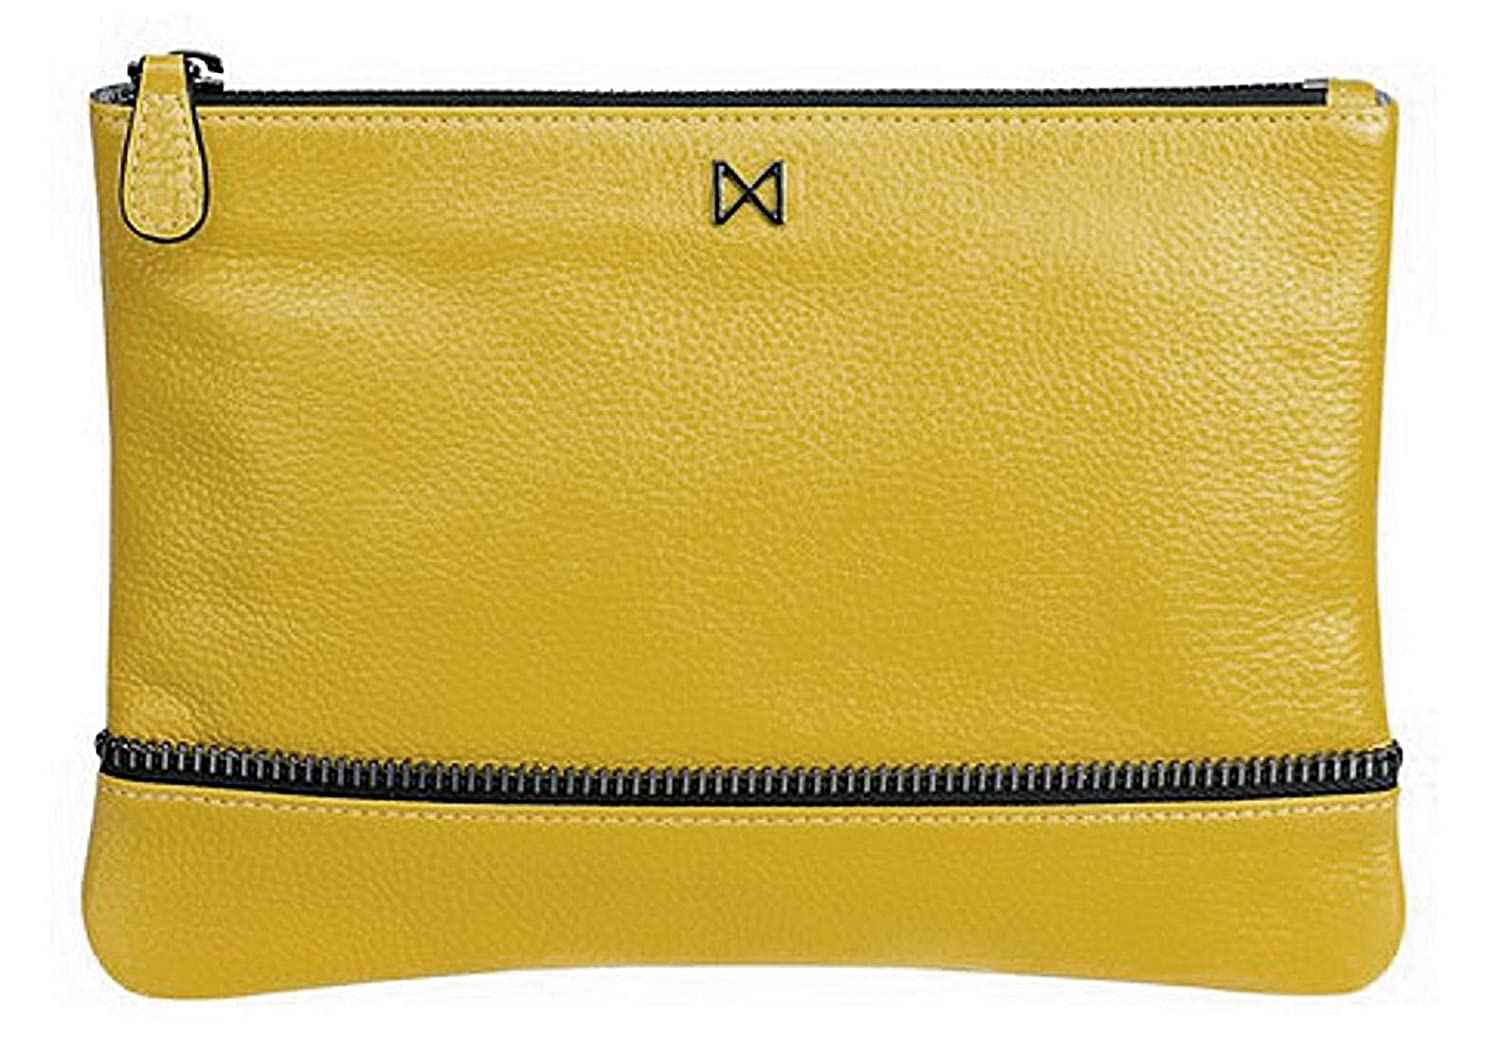 """Allegra"" Pouch-style Clutch, Soft Leather, Gunmetal Zipper & Zipper Accent, Saffron Yellow"